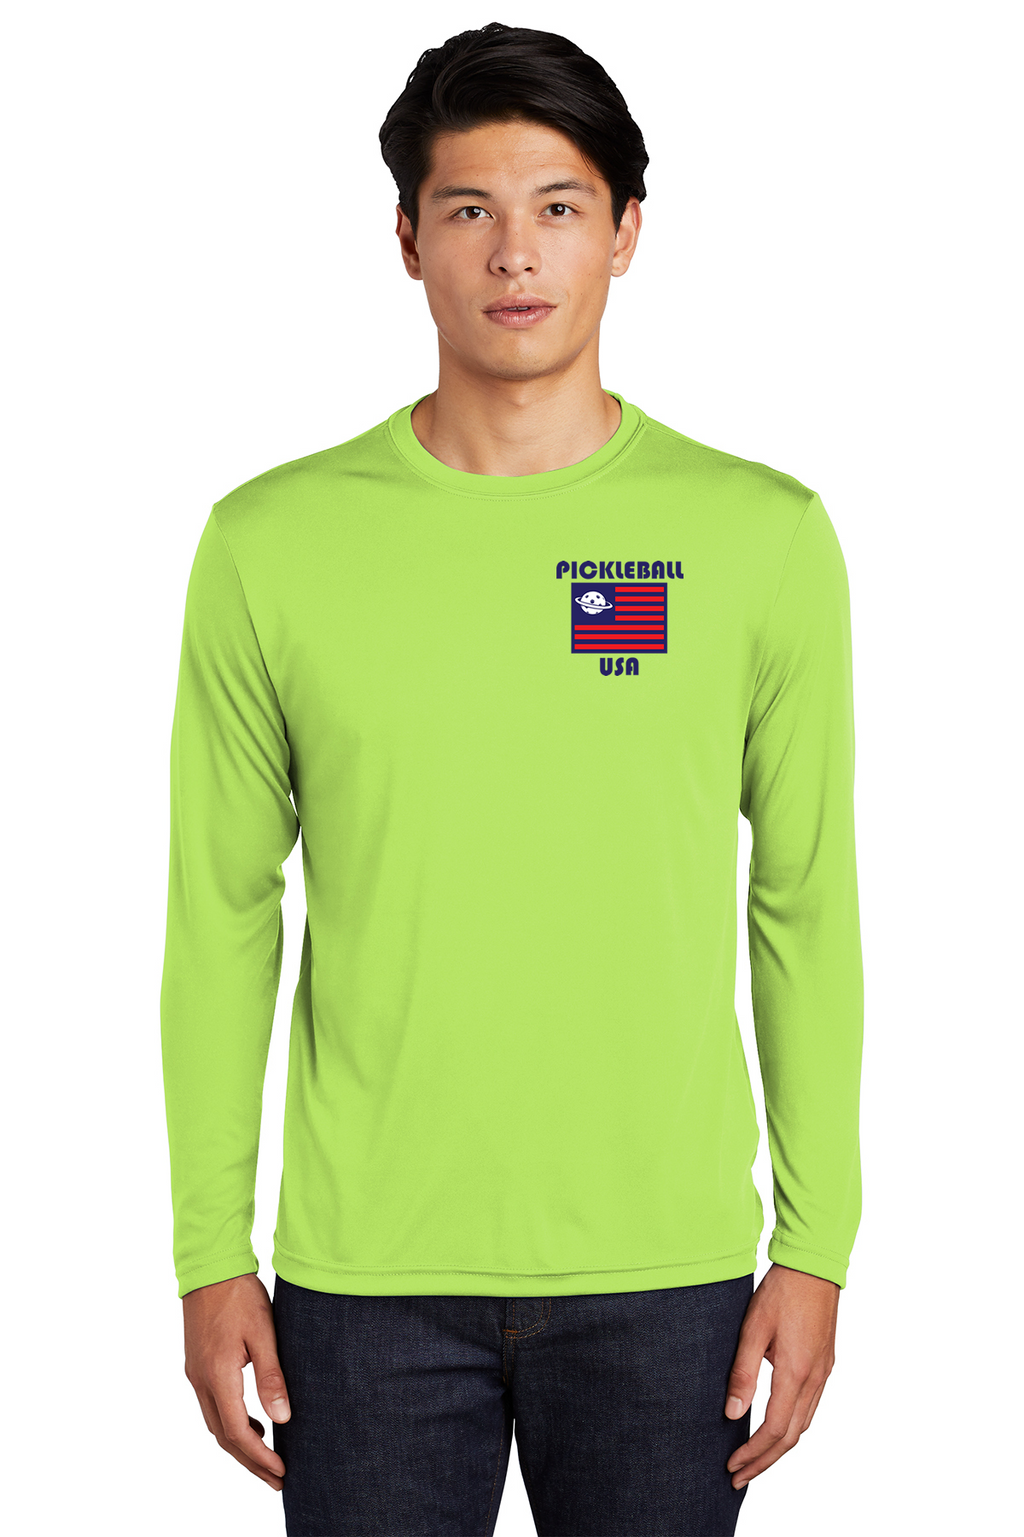 Men's Long Sleeve Performance Shirt 'PB USA'- Regular & UPF 50*